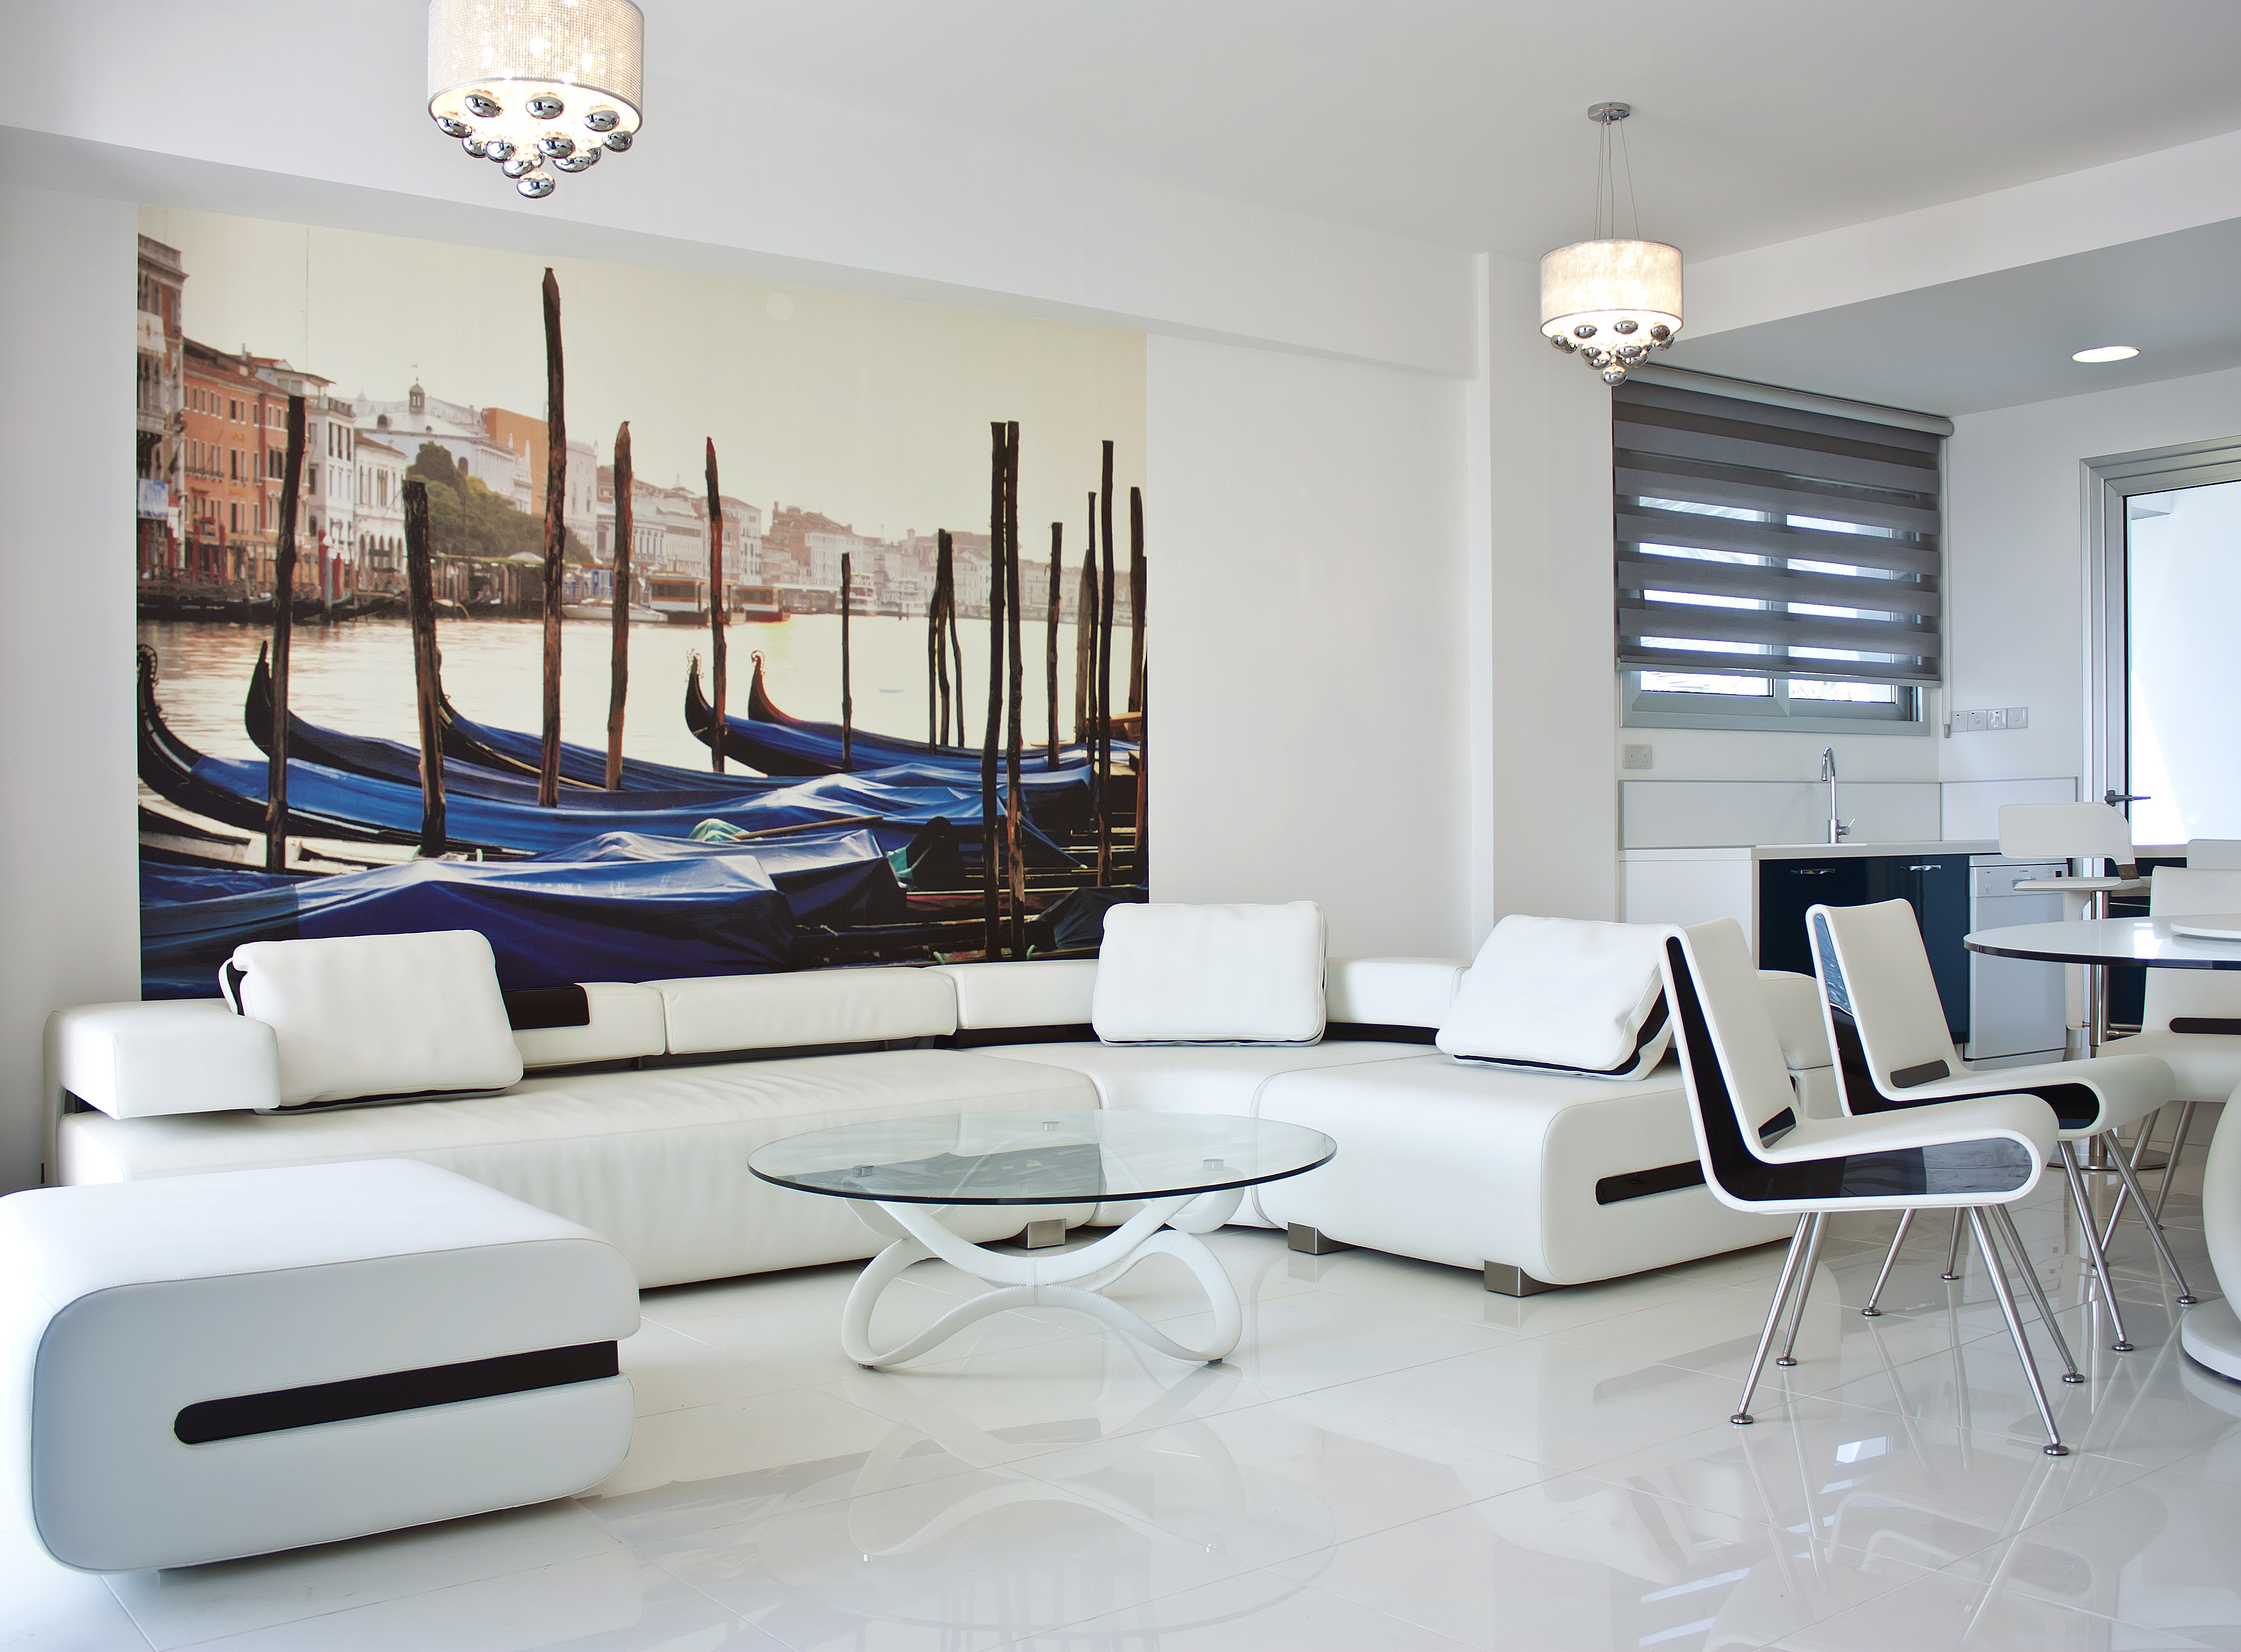 Property Gallery interior design - Limassol